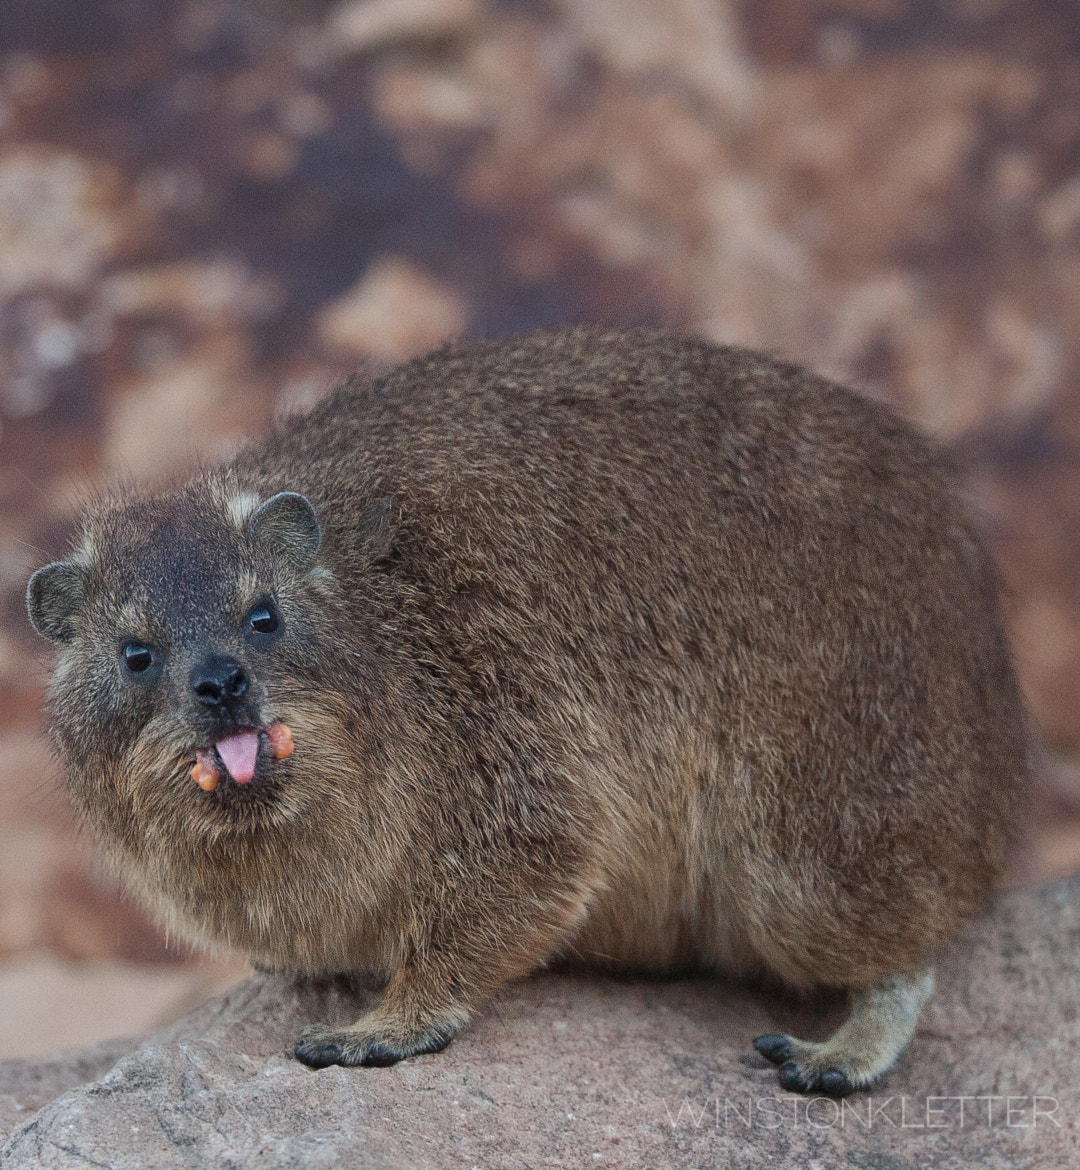 Photograph Dassie = Rock Hyrax = Closest Relative is the Elephant = True they even have tiny tusks by Winston Kletter on 500px